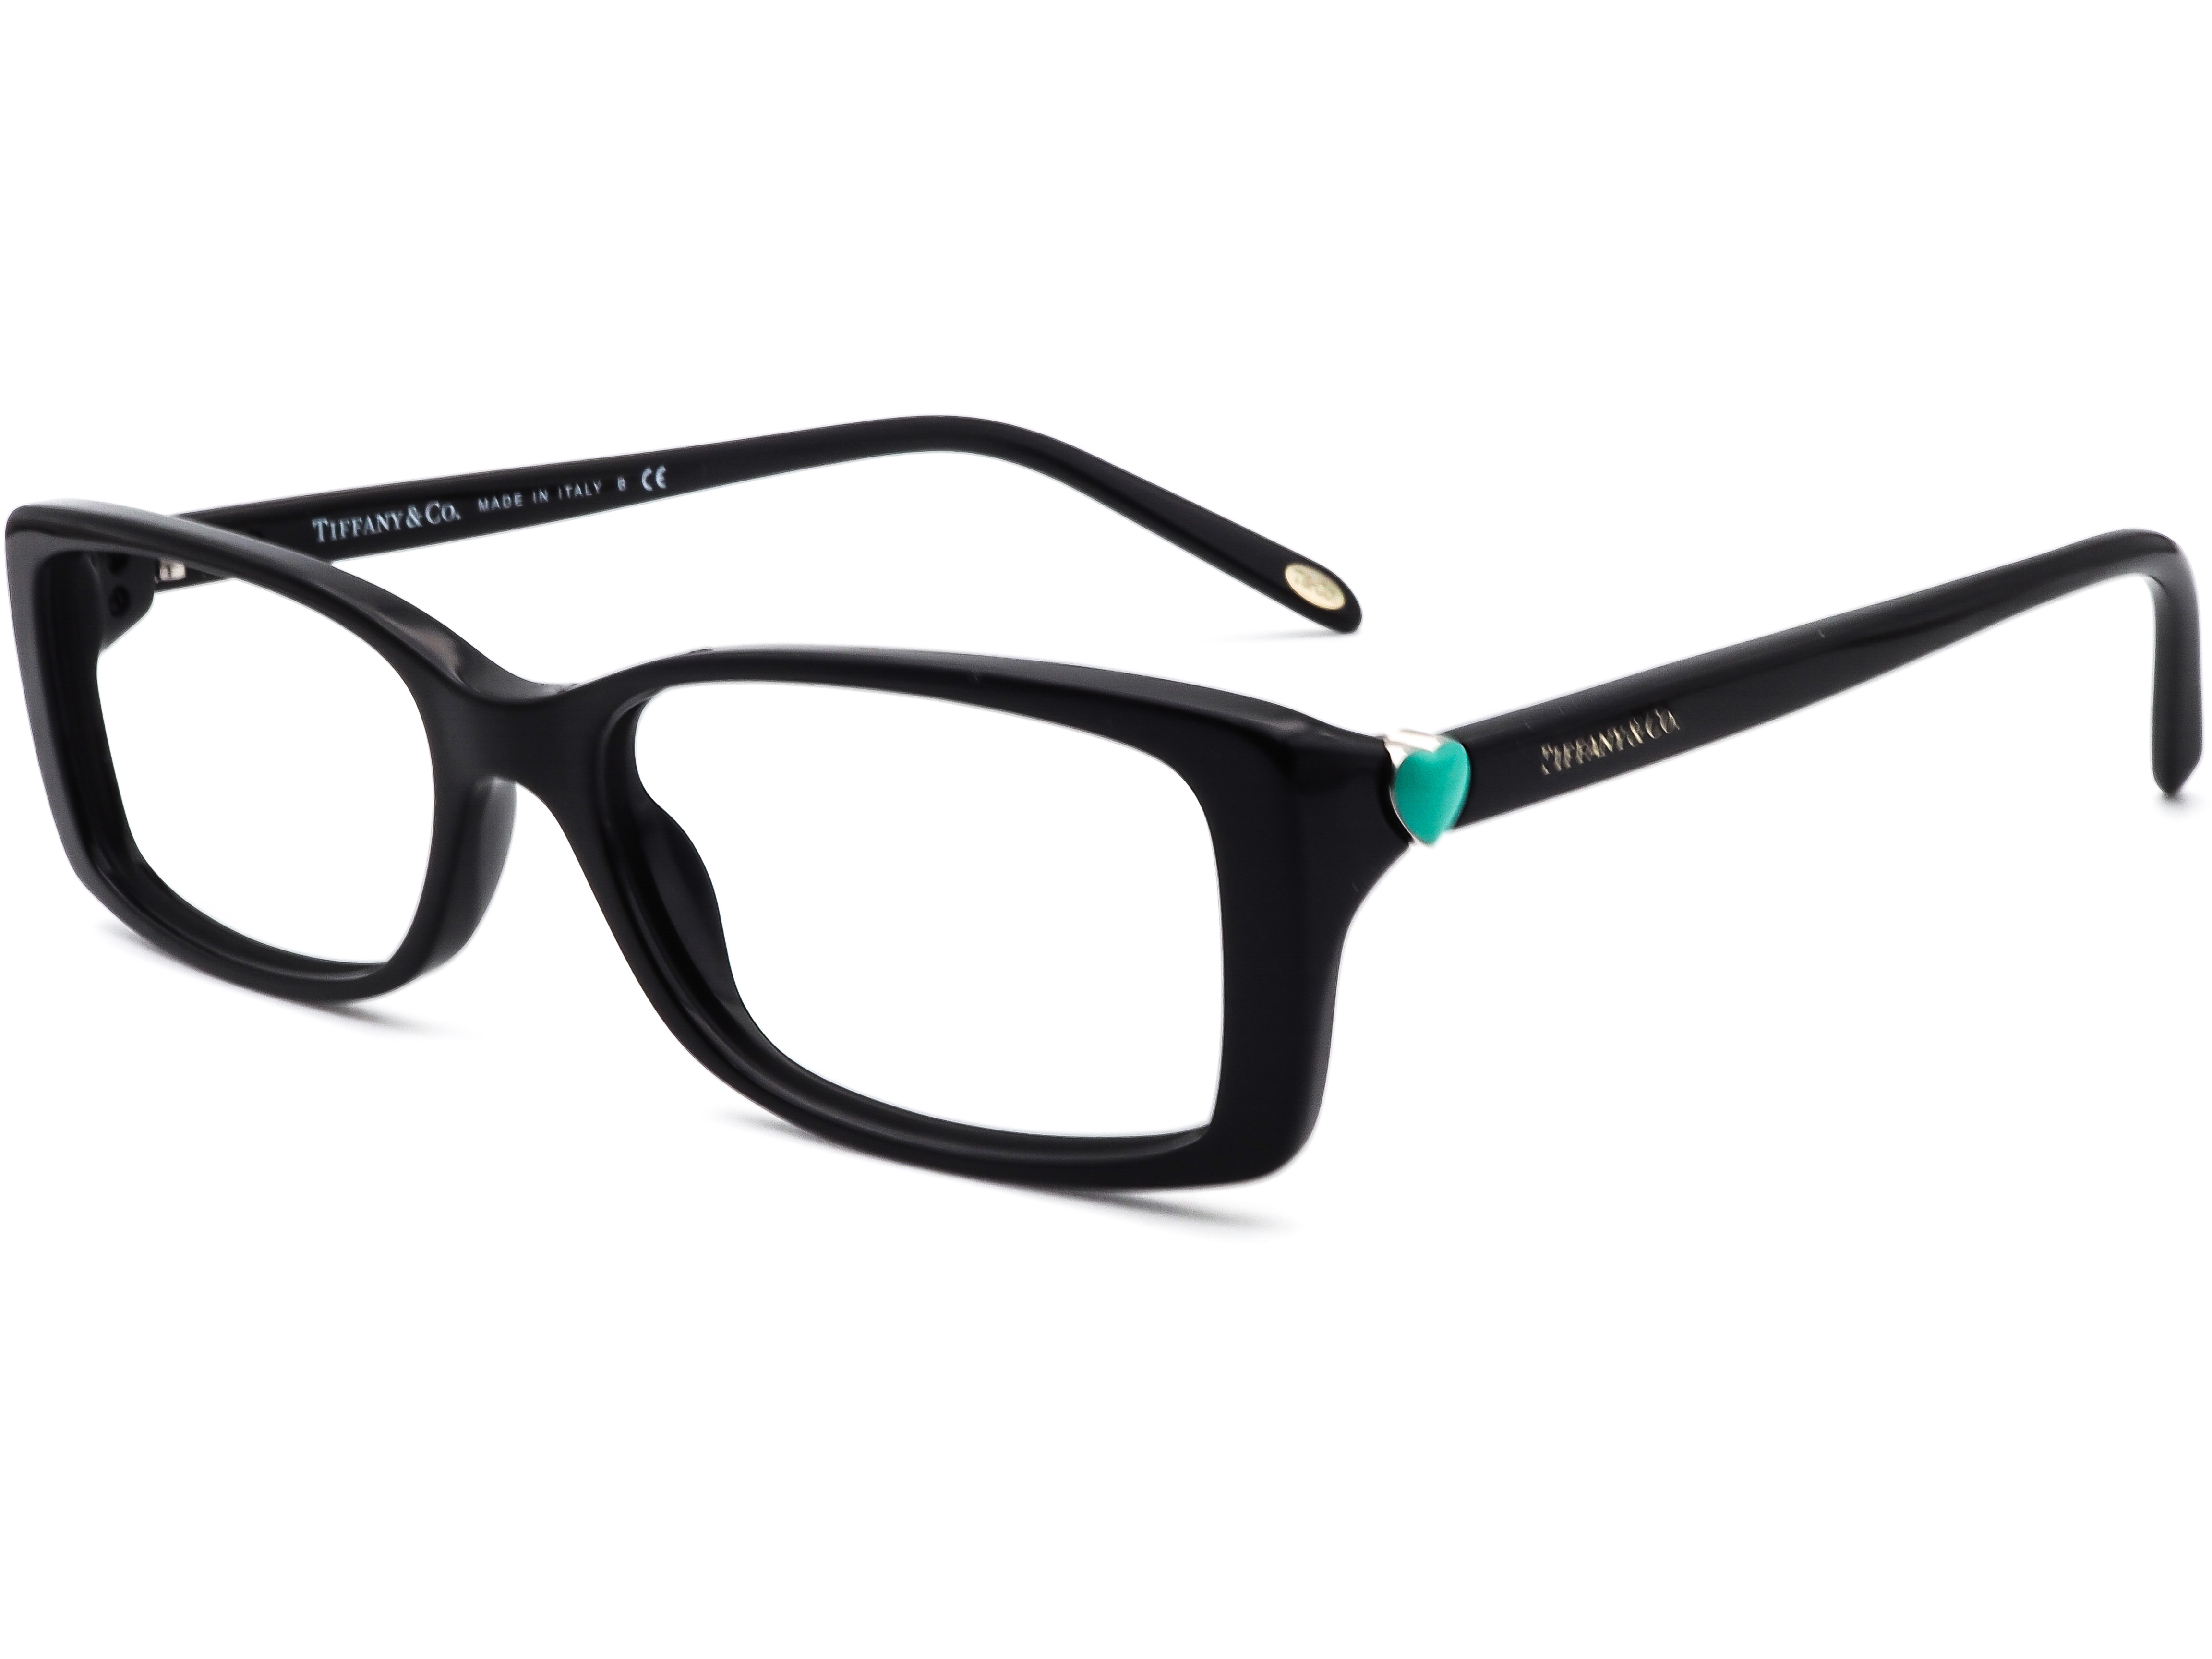 Tiffany & Co. TF 2098 8001 Eyeglasses